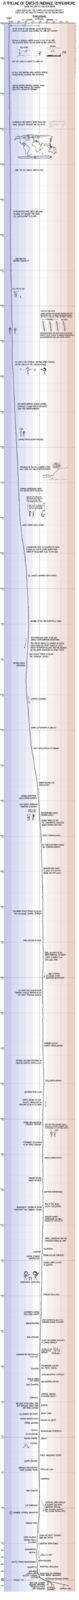 earth_temperature_timeline (2).png